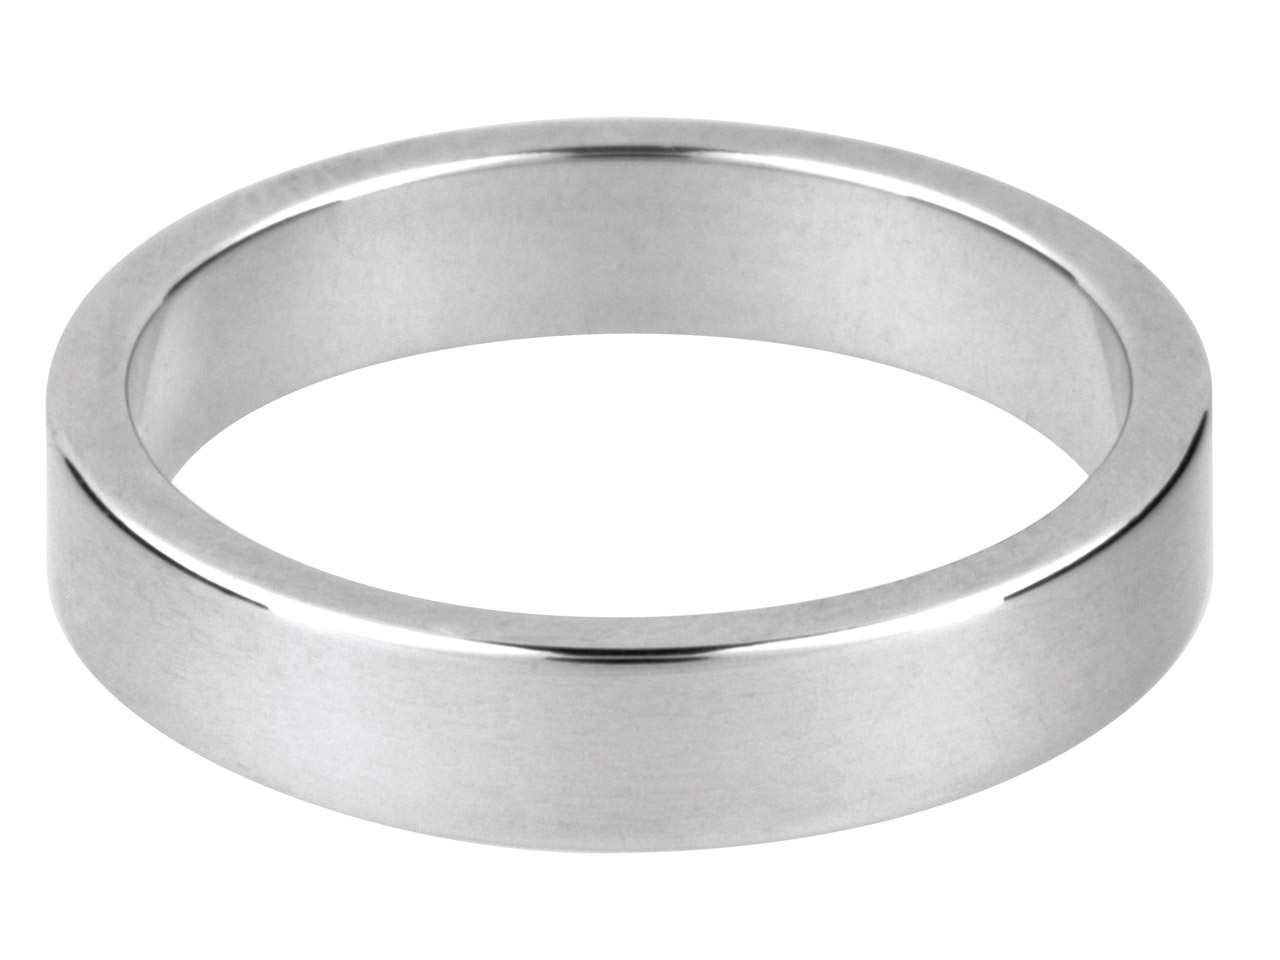 Silver Flat Wedding Ring 3.0mm M    2.7gms Heavy Weight Hallmarked Wall Thickness 1.43mm